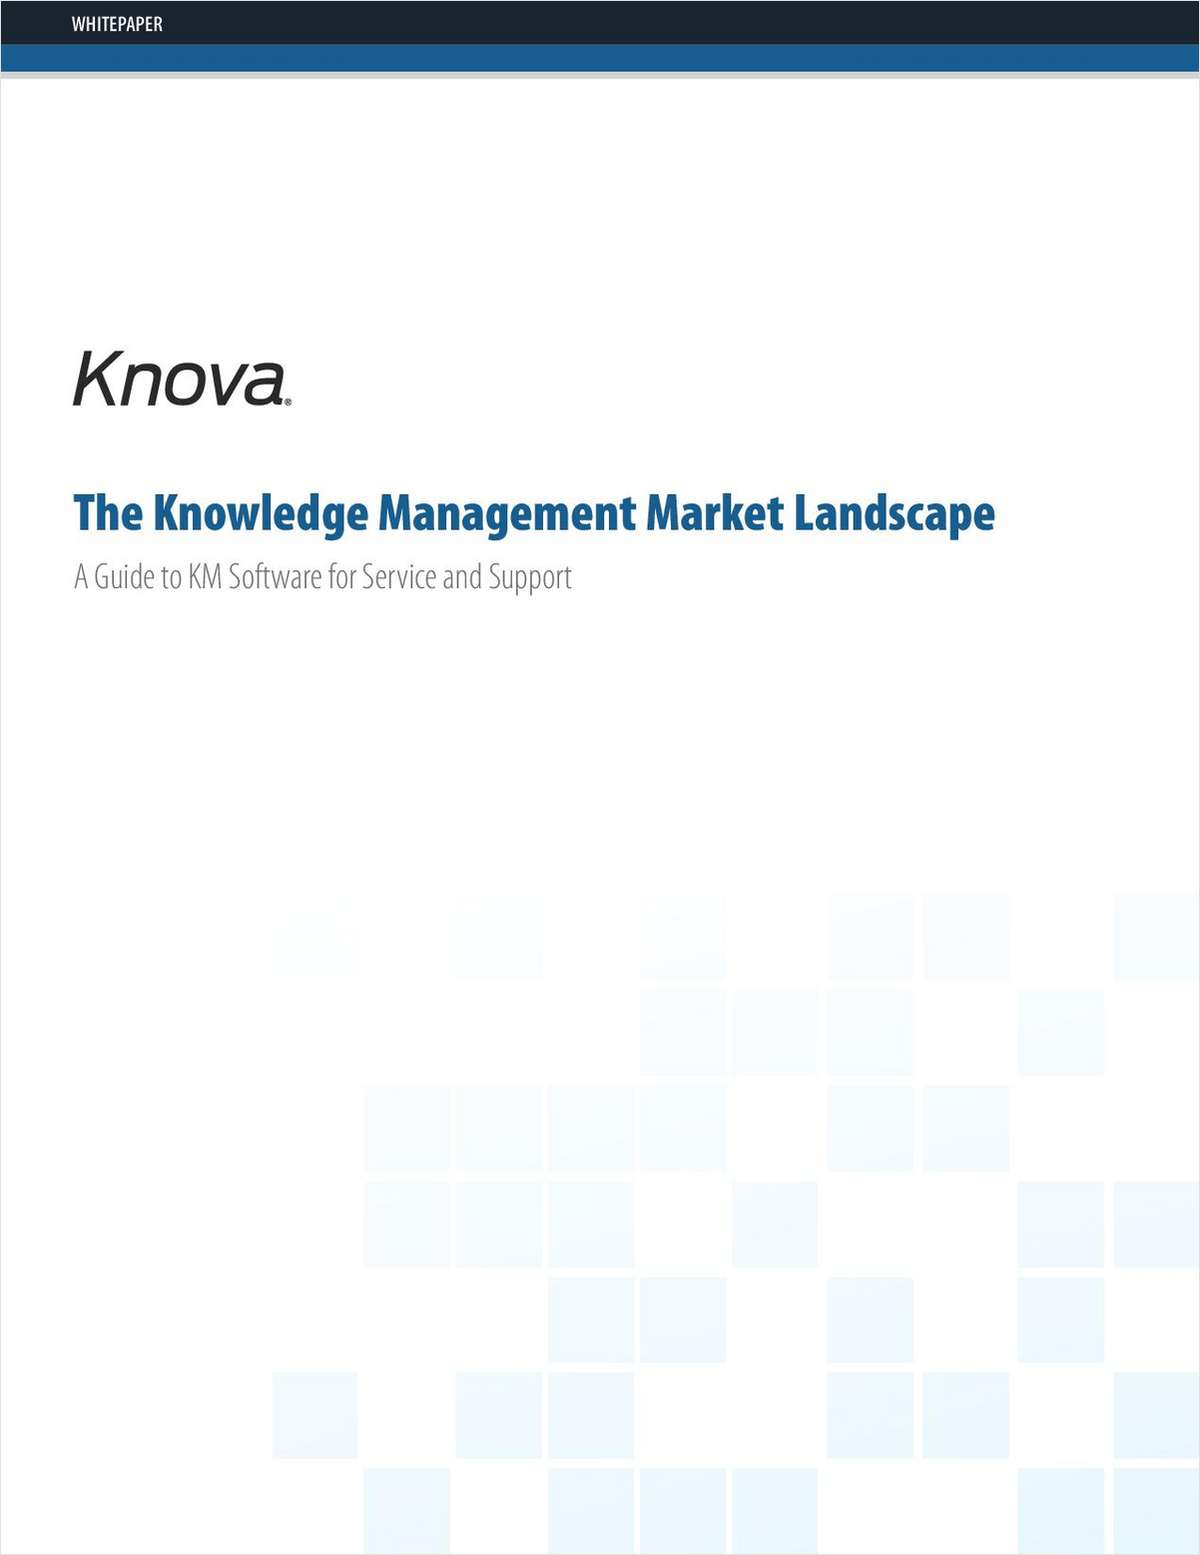 A Guide to Knowledge Management Software for Service and Support